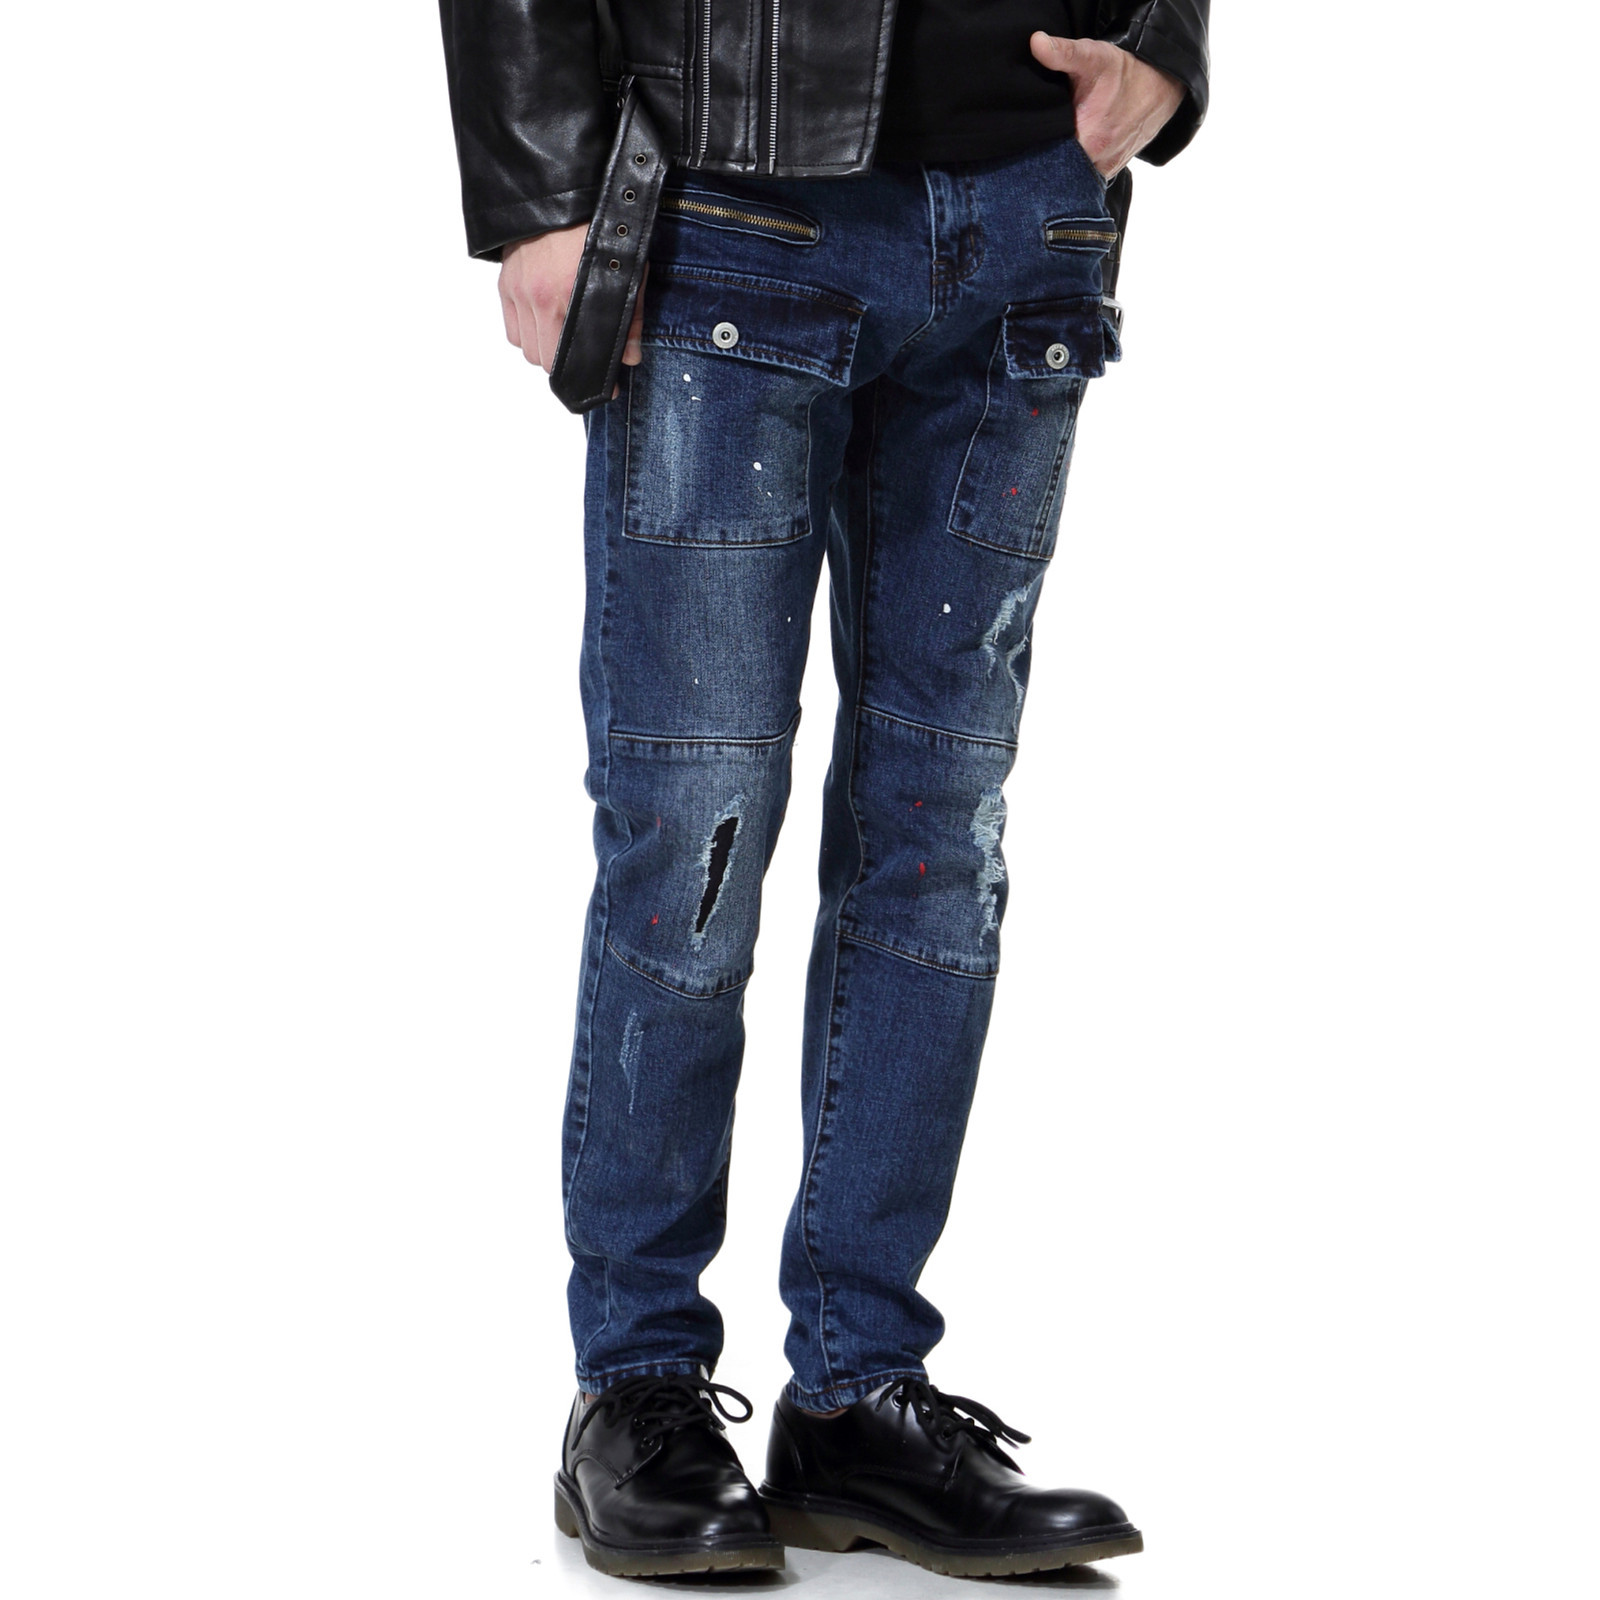 Brand Aowofs Men's Direct Sales 2019 New Men's Hole Jeans High-End Boutique Hair Washed Cotton Multi-Pocket Casual Trousers